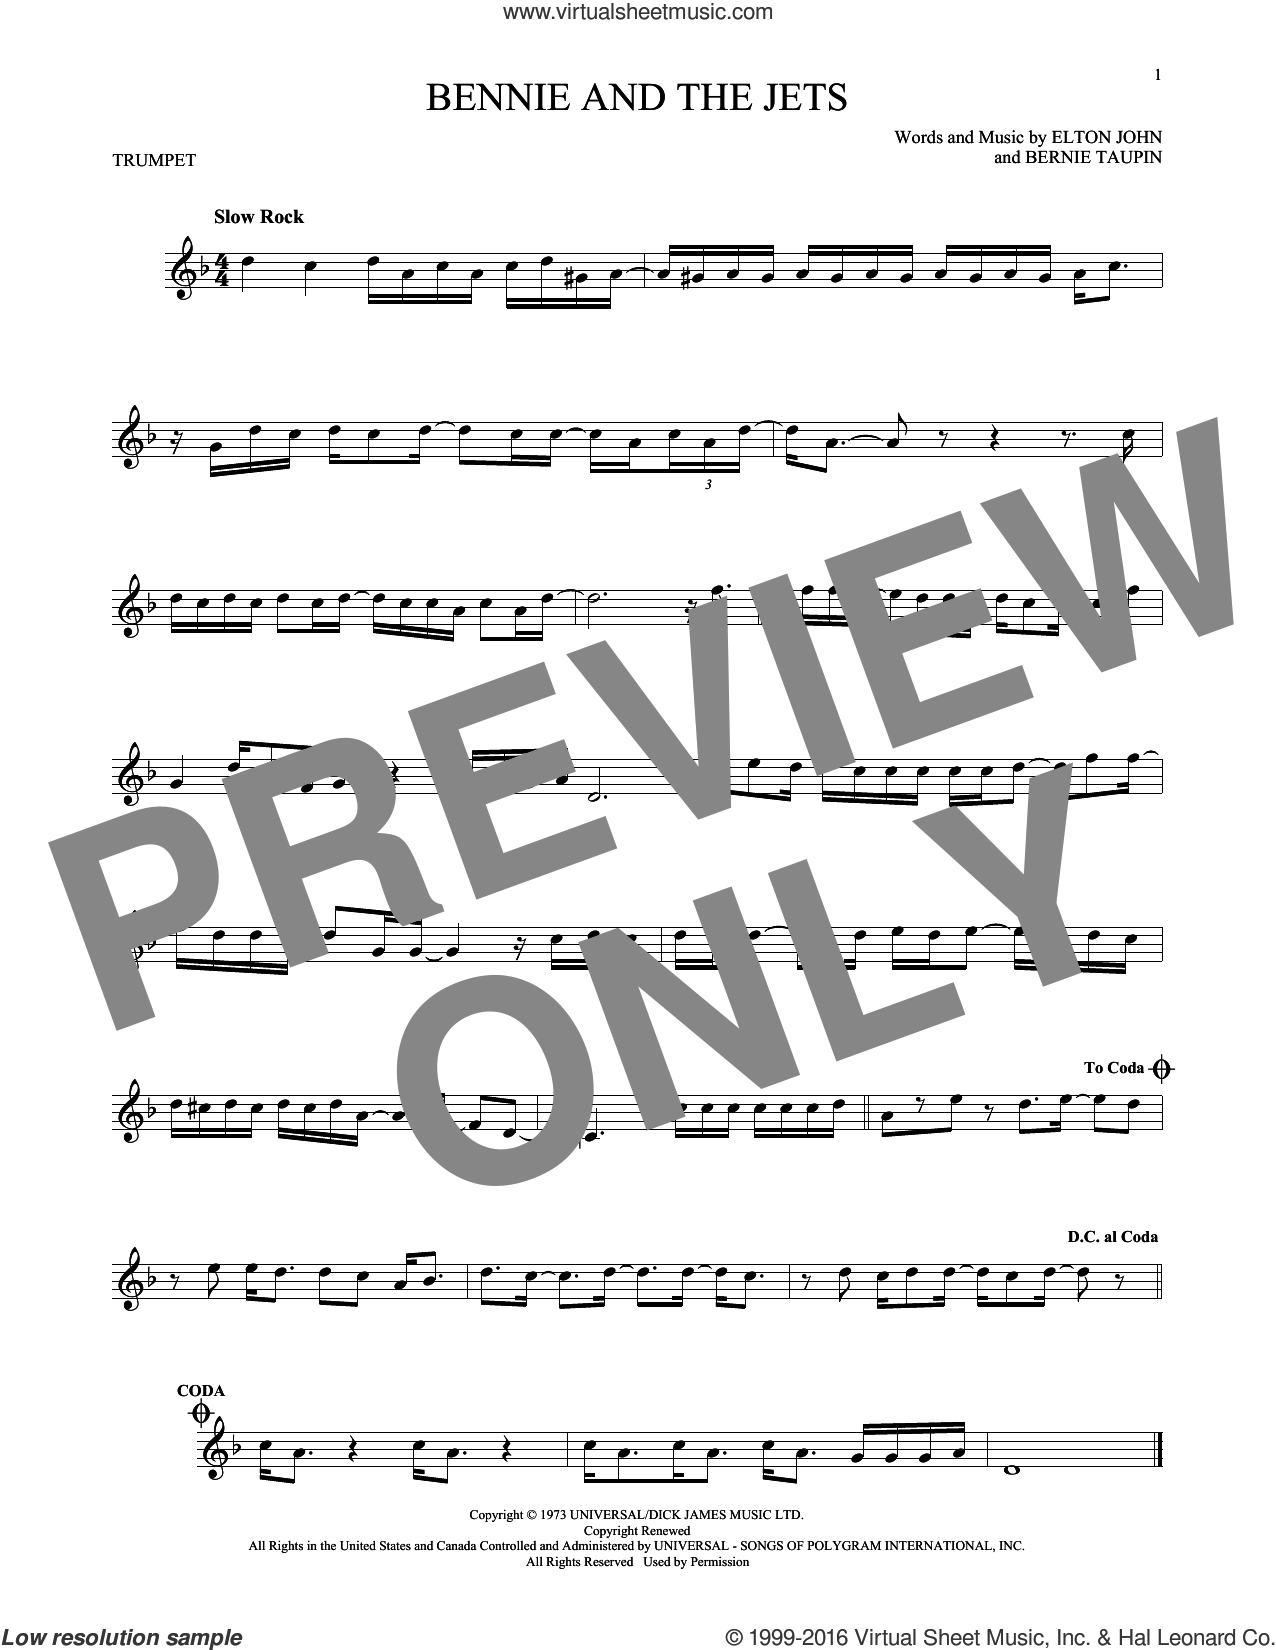 Bennie And The Jets sheet music for trumpet solo by Elton John and Bernie Taupin, intermediate skill level